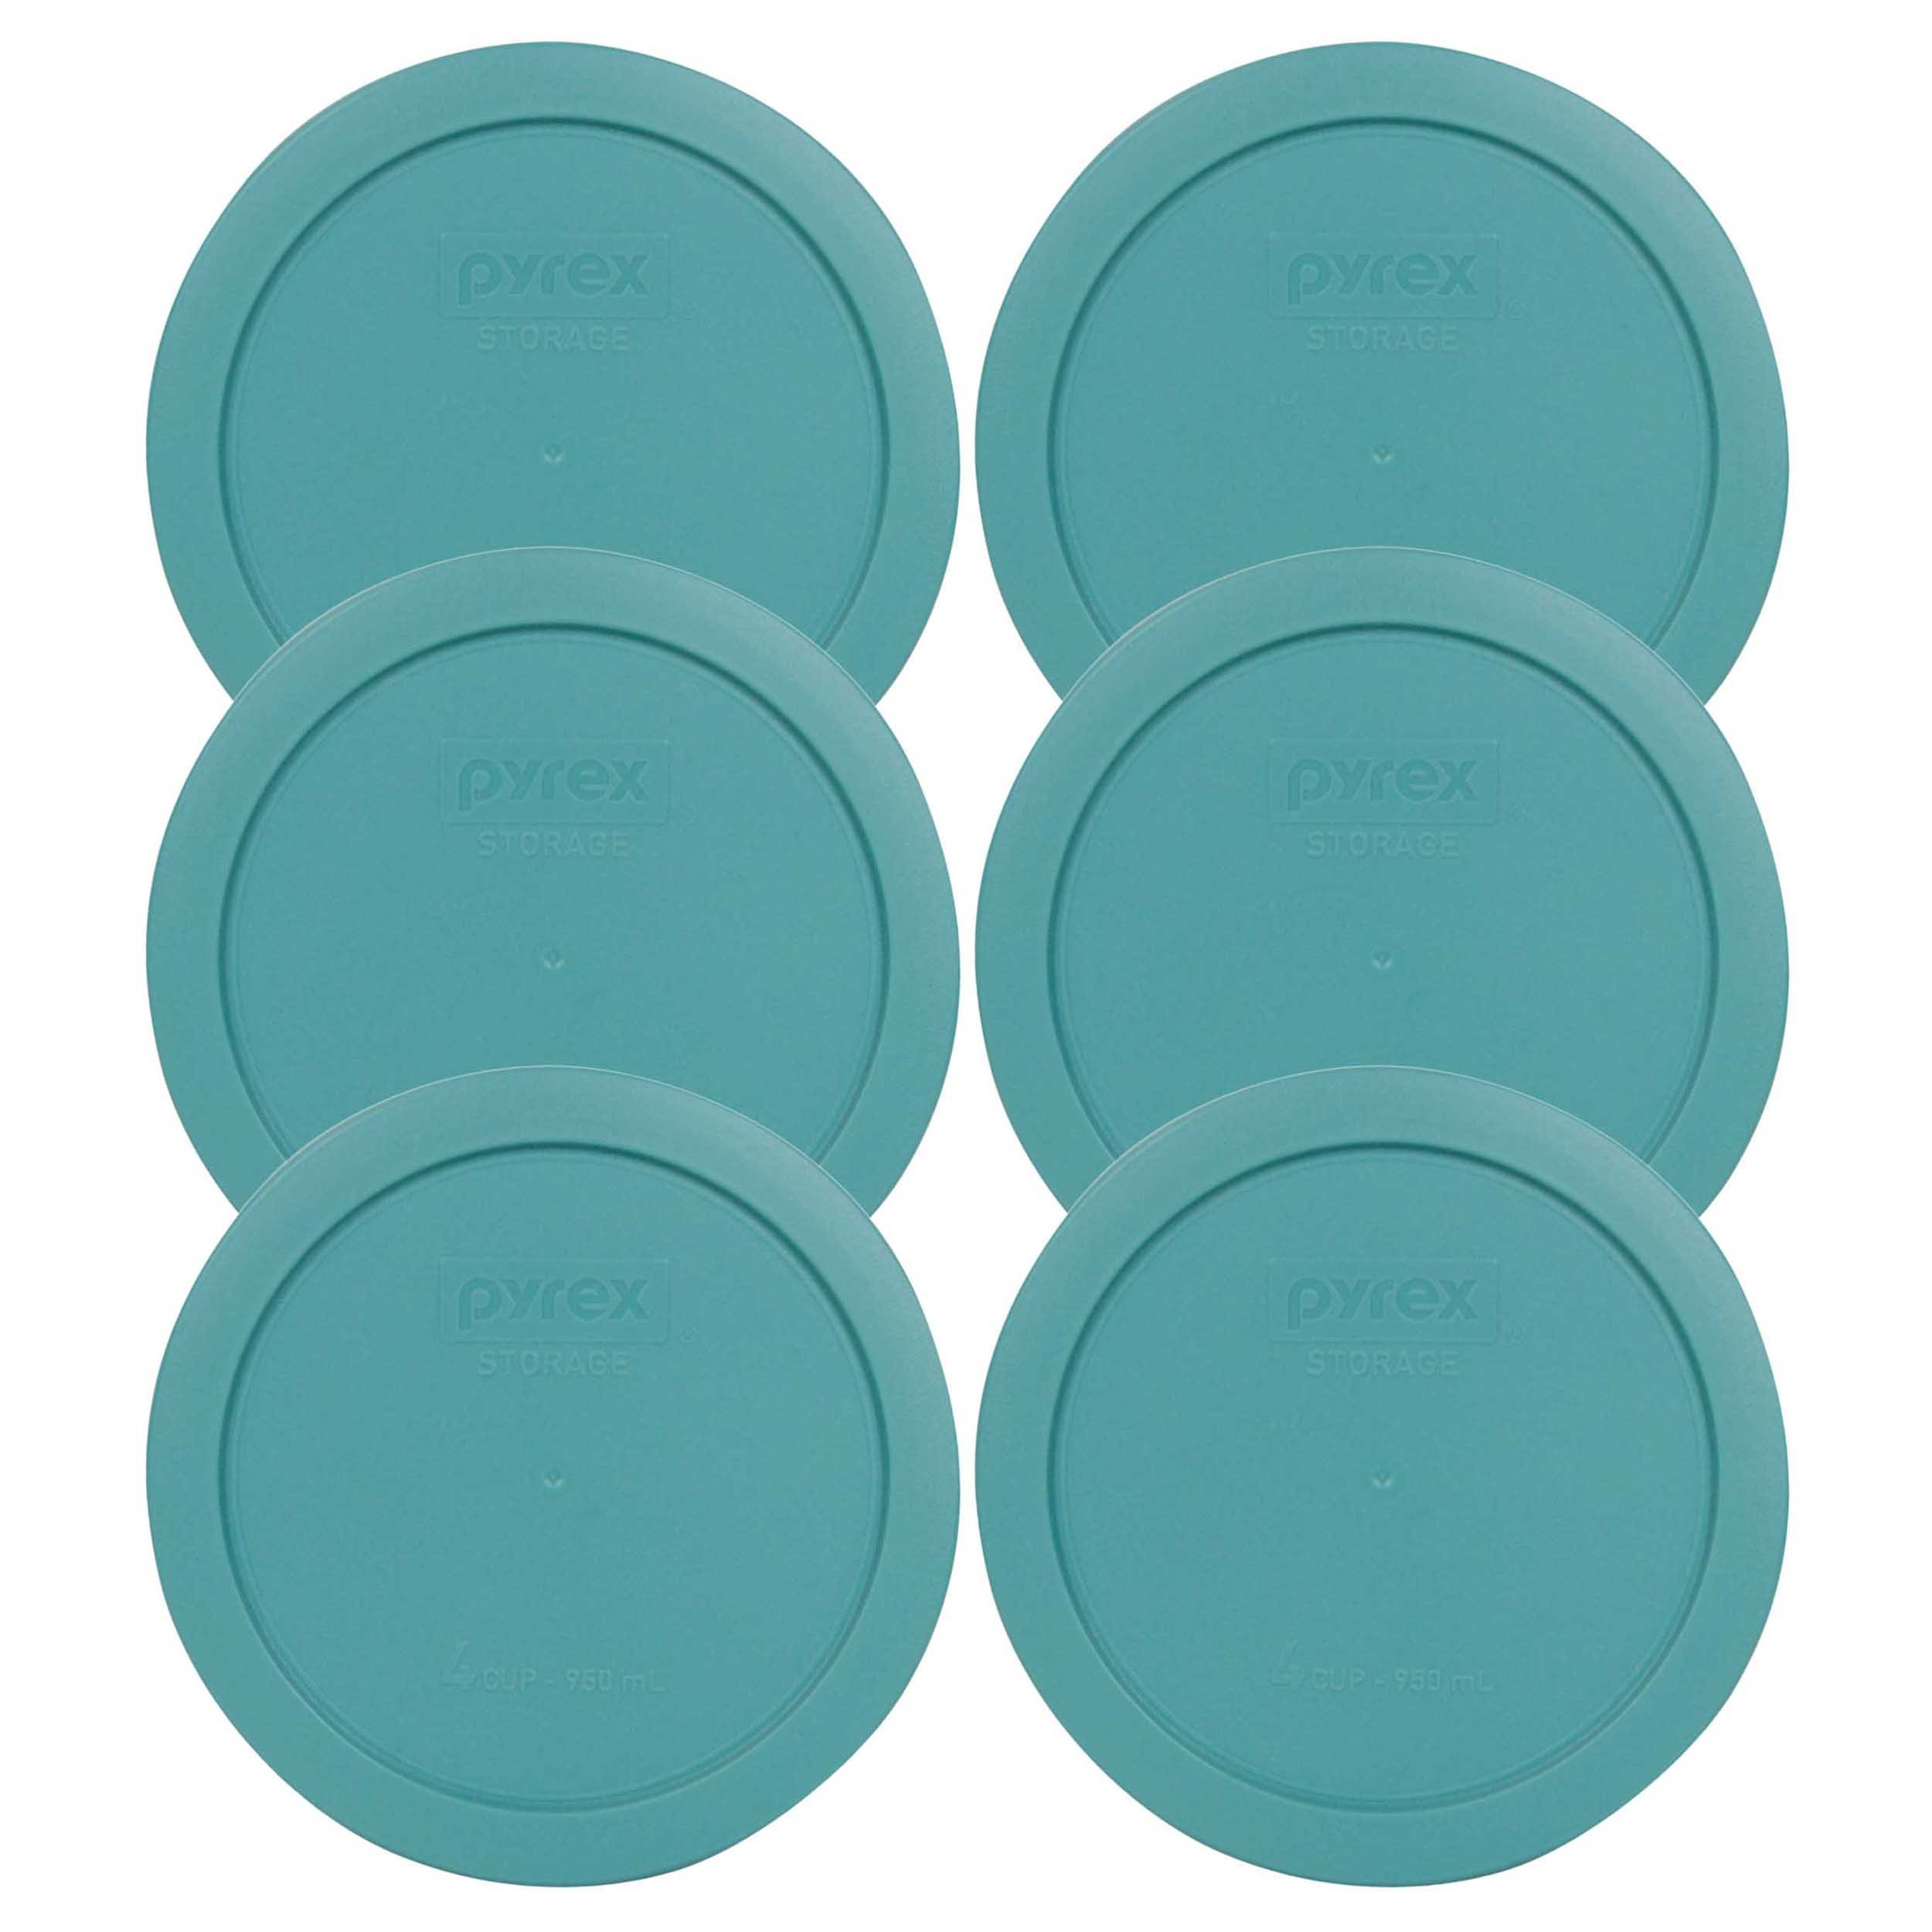 Pyrex 7201-PC Round 4 Cup Storage Lid for Glass Bowls (6, Turquoise) by Pyrex